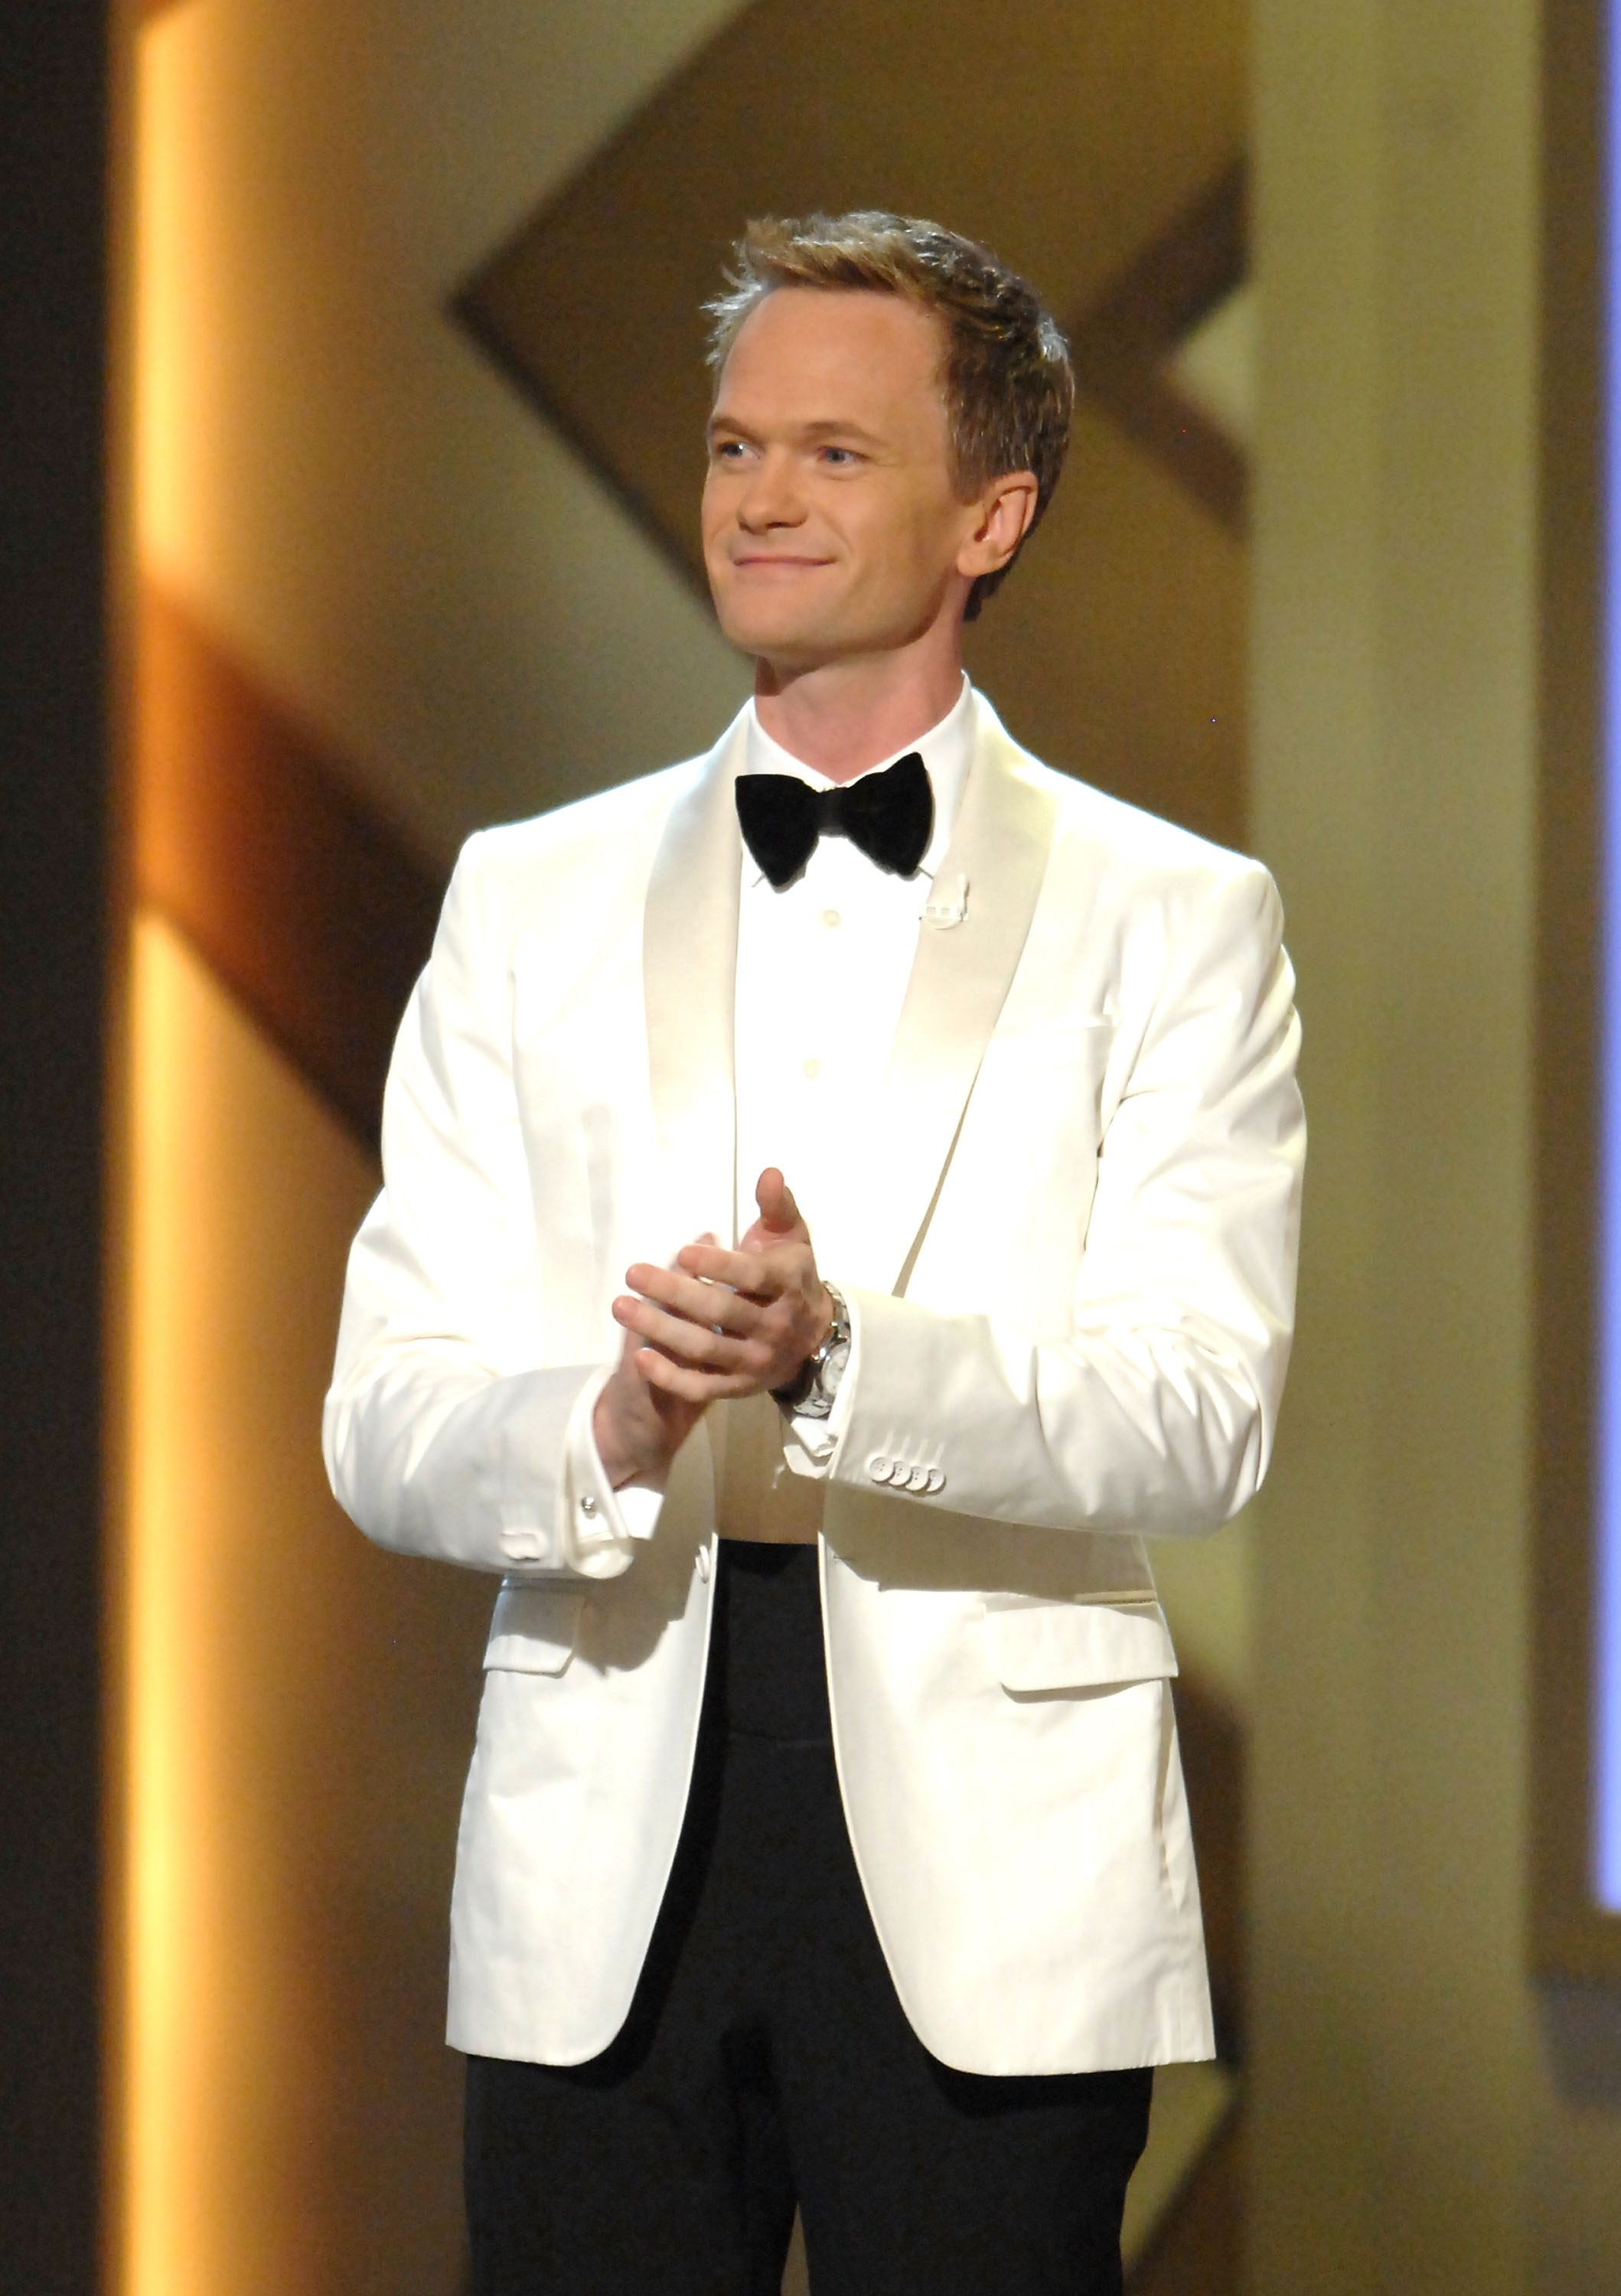 Actor Neil Patrick Harris emcees the opening celebration at The Smith Center for the Performing Arts in Las Vegas